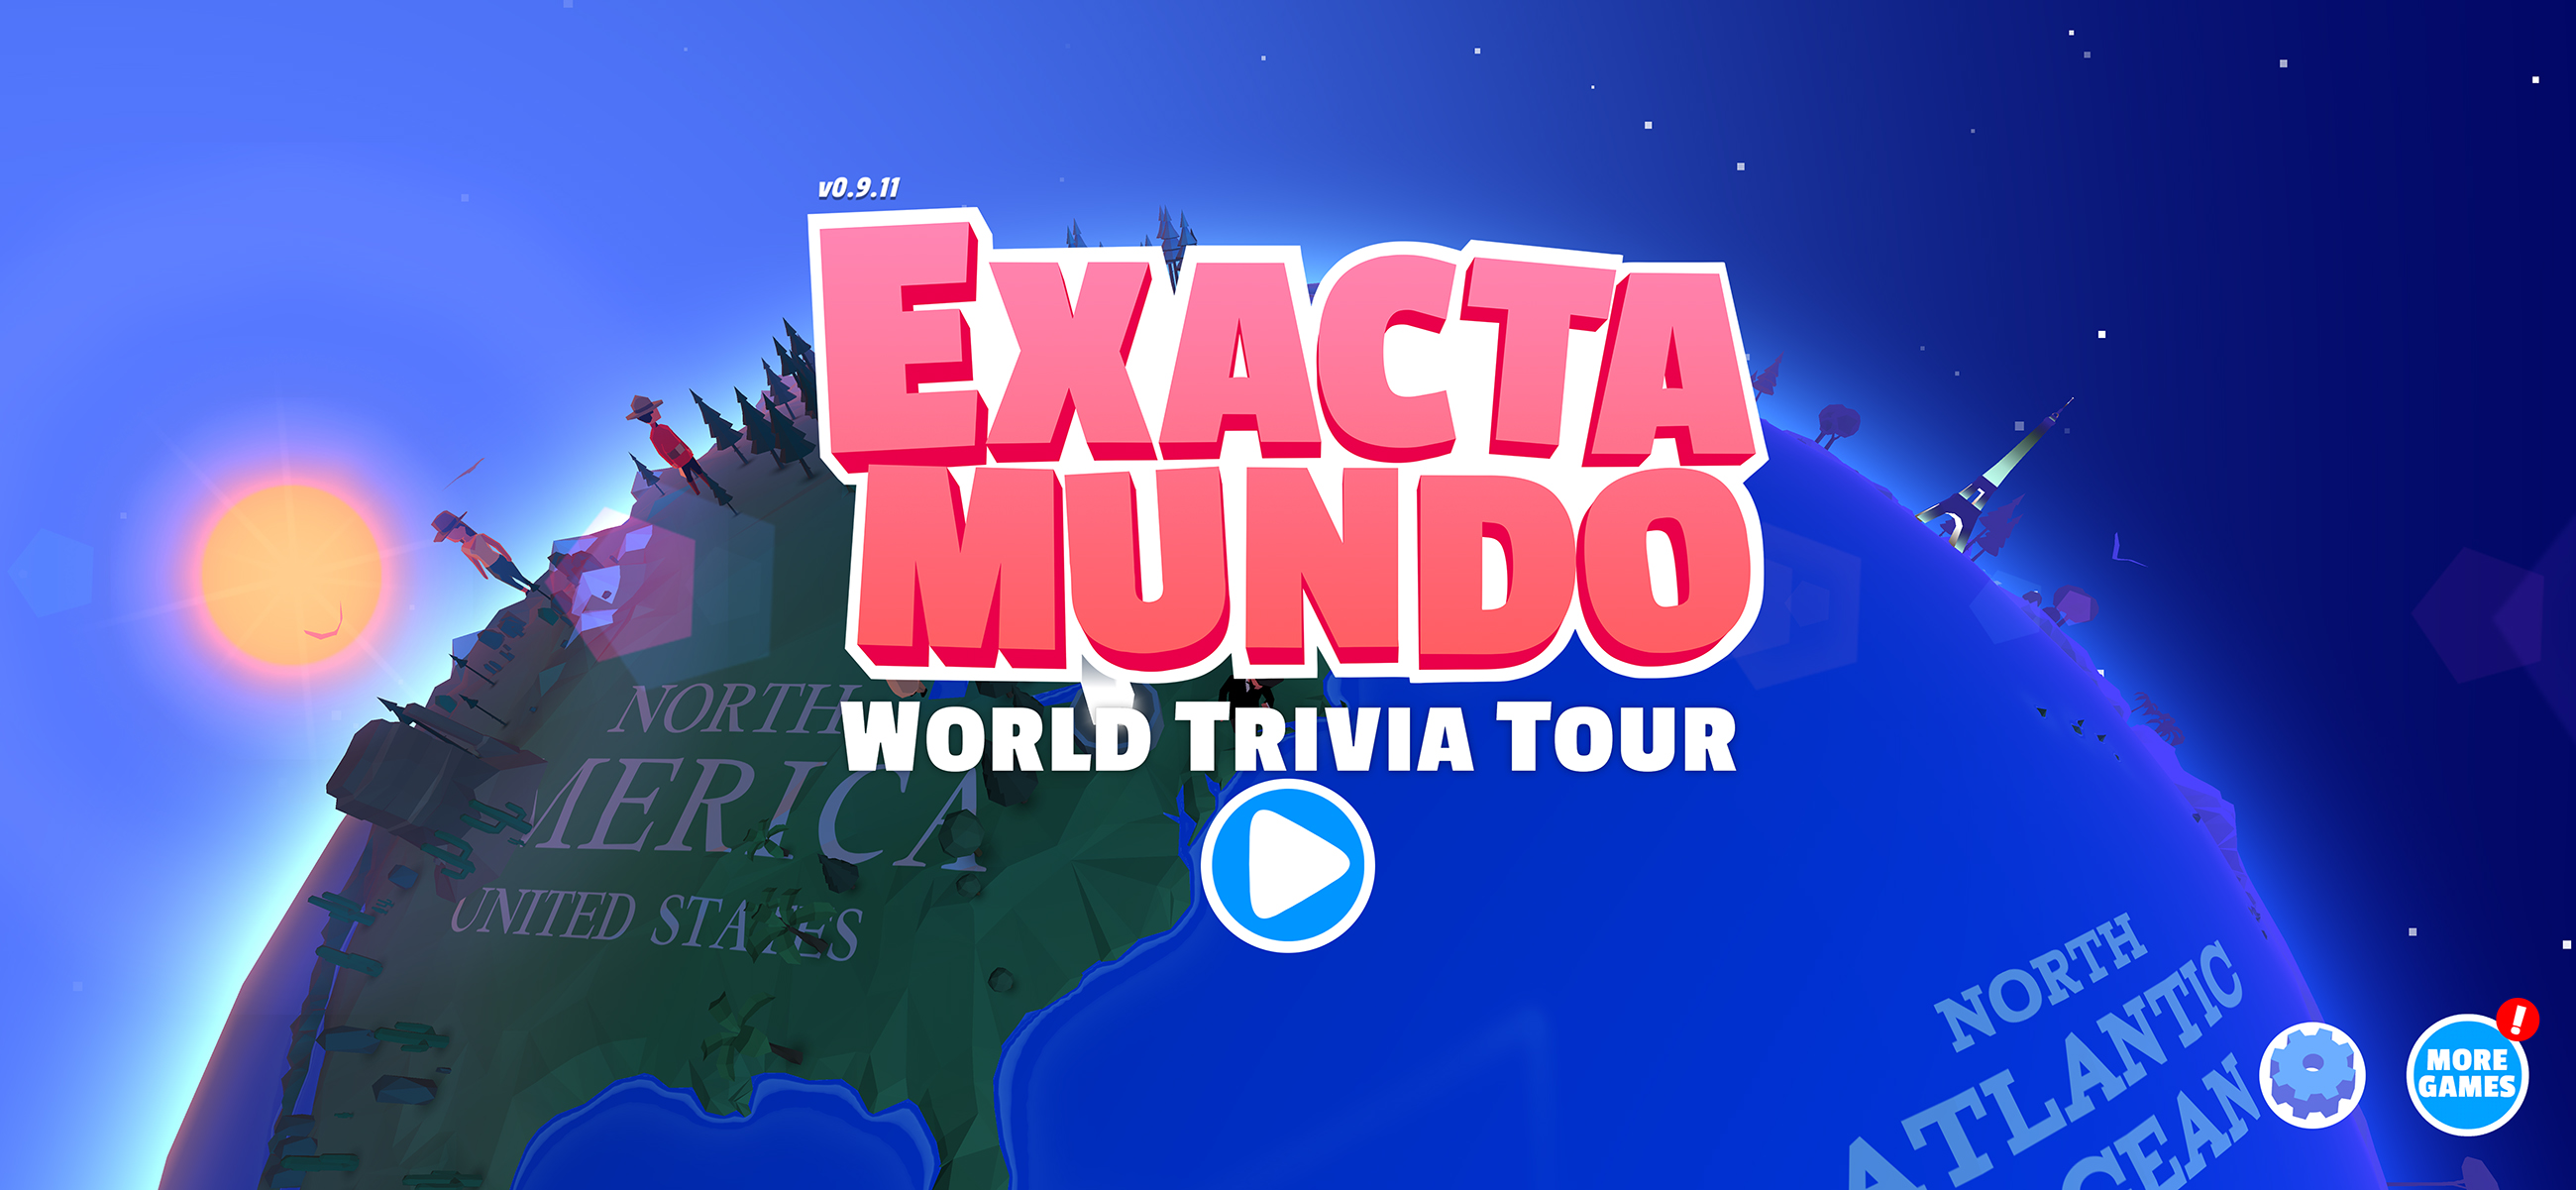 Exactamundo - World Trivia Tour